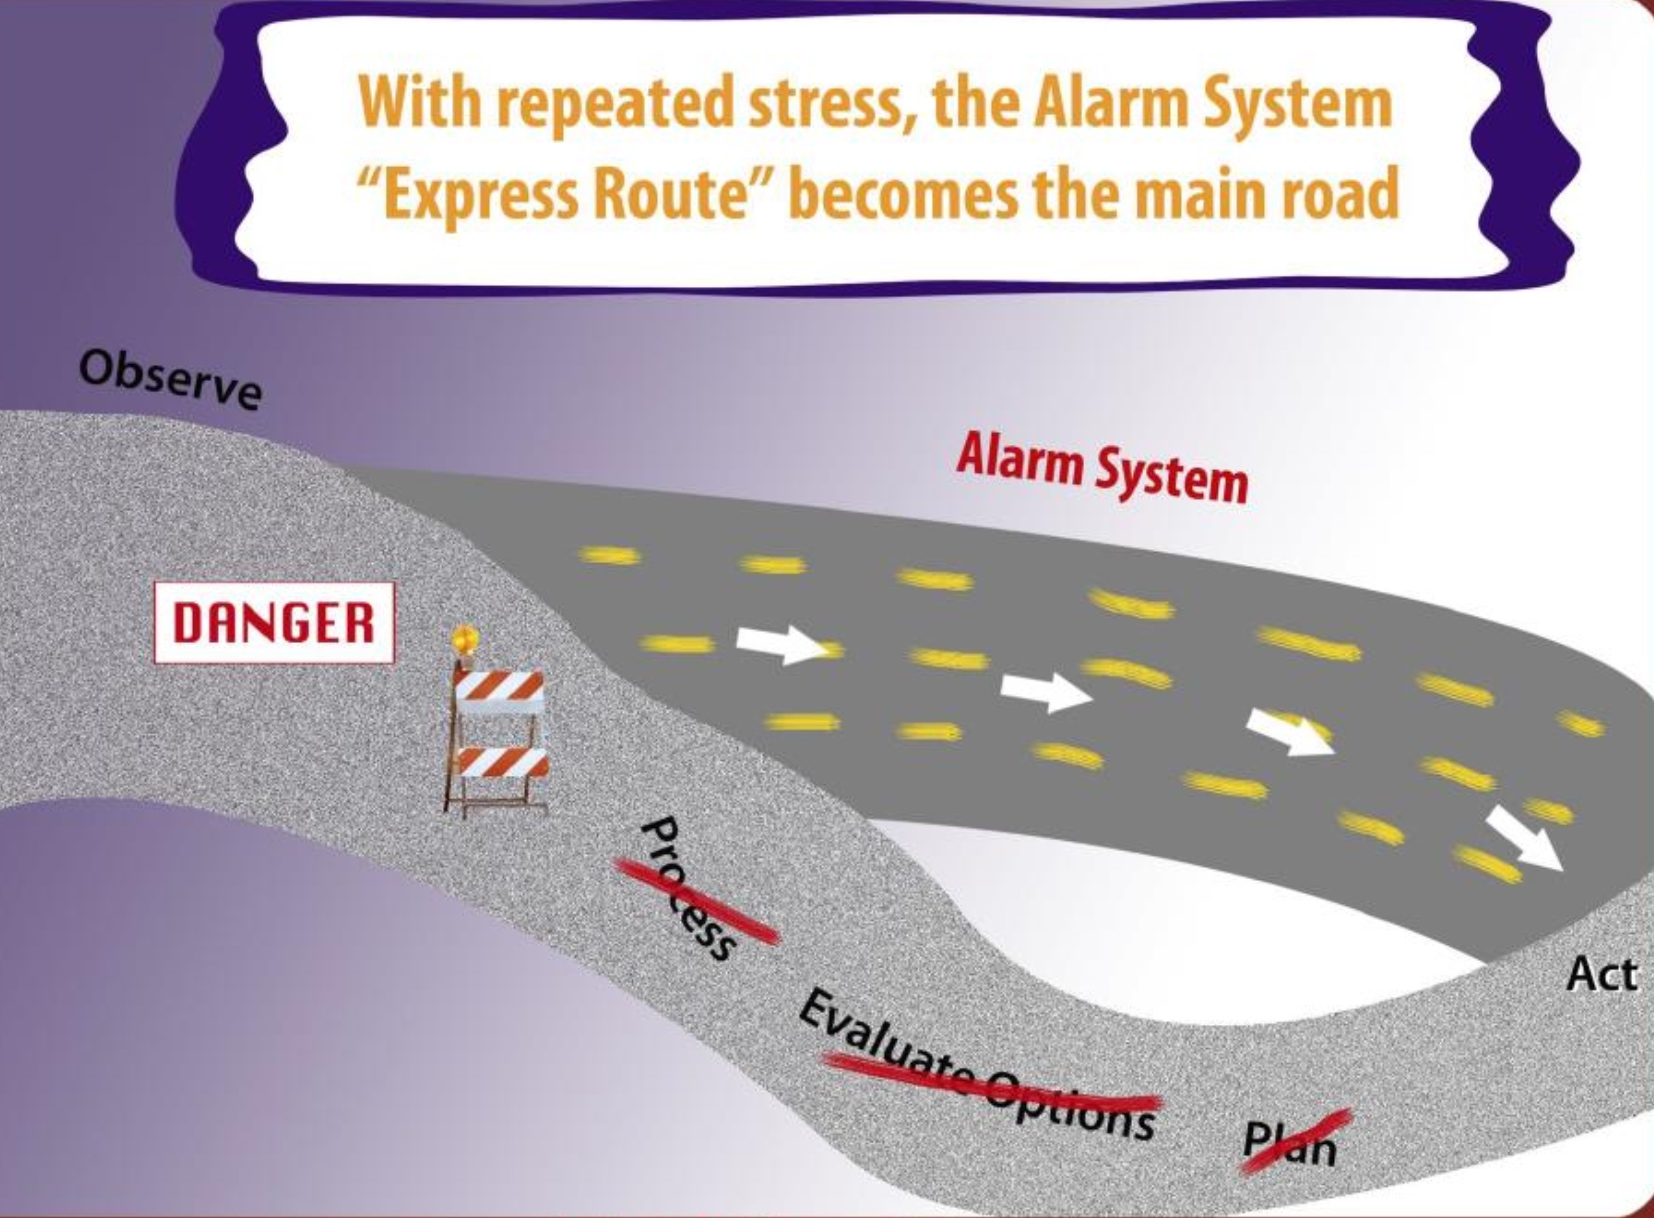 alarm system express route becomes the main road